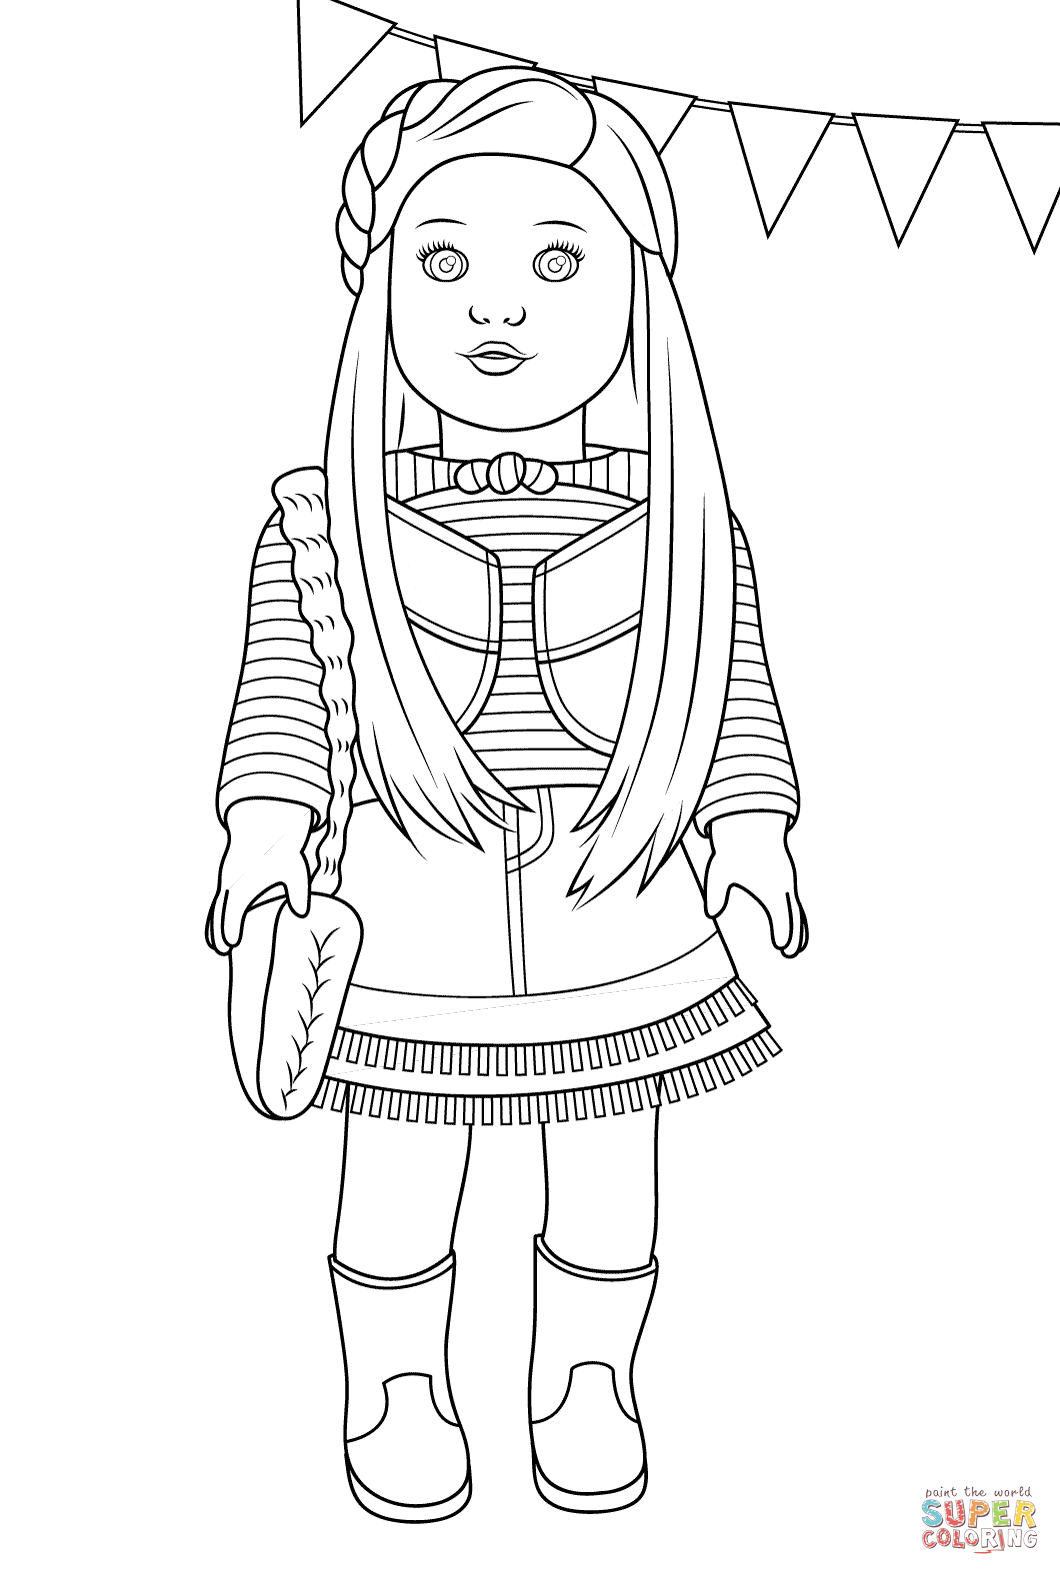 coloring pages dolls - photo#23